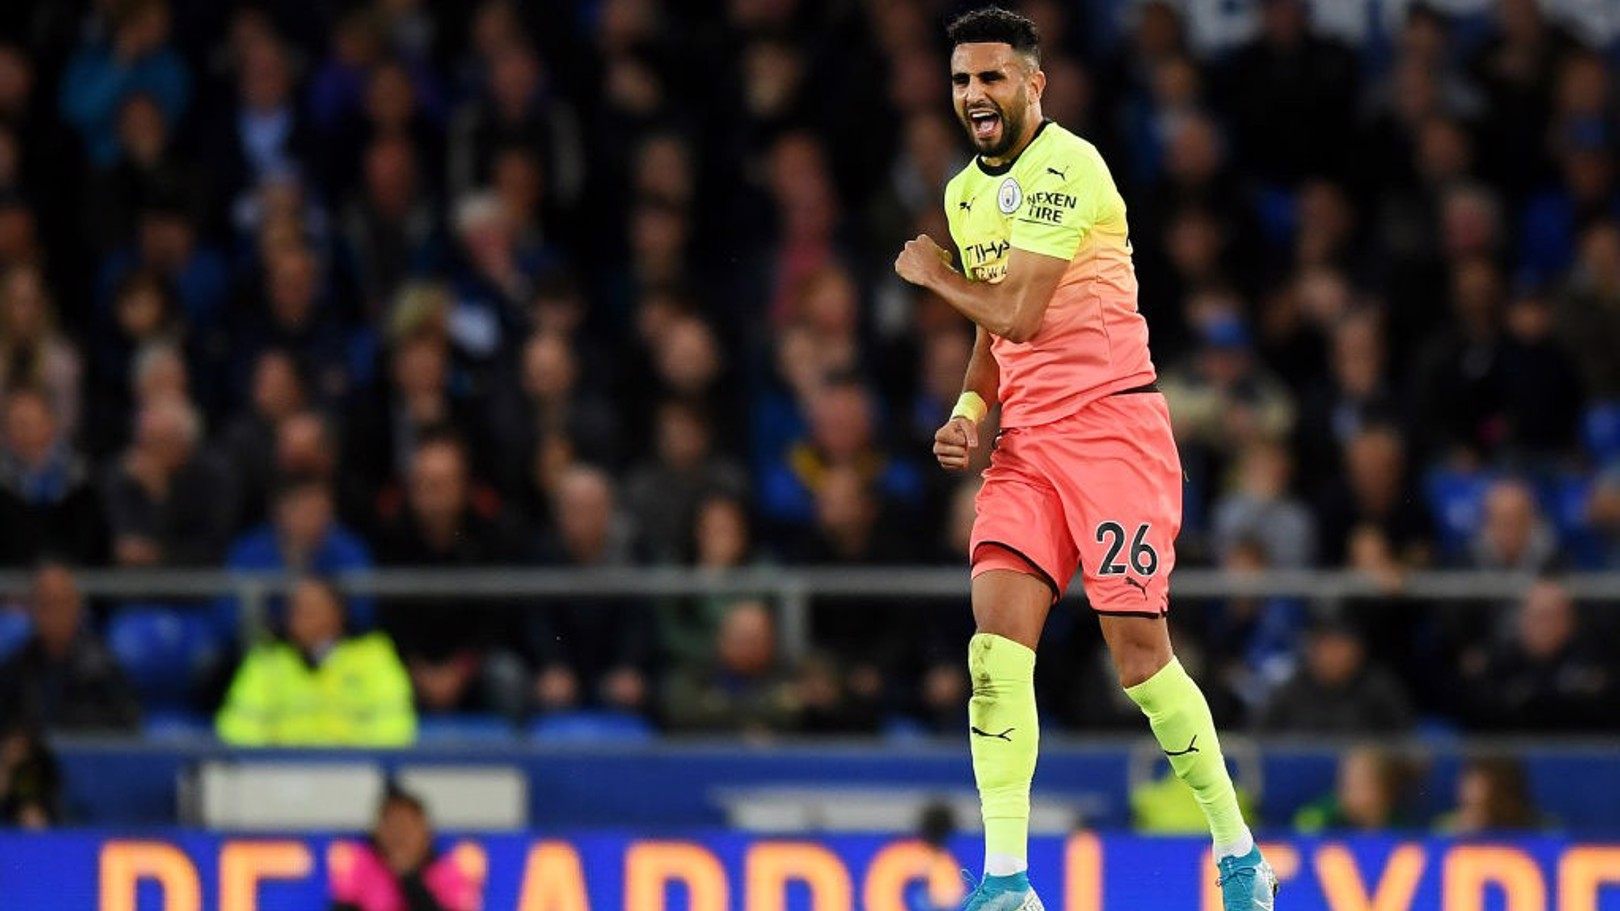 JUMPING FOR JOY: Riyad Mahrez celebrates his goal against Everton.